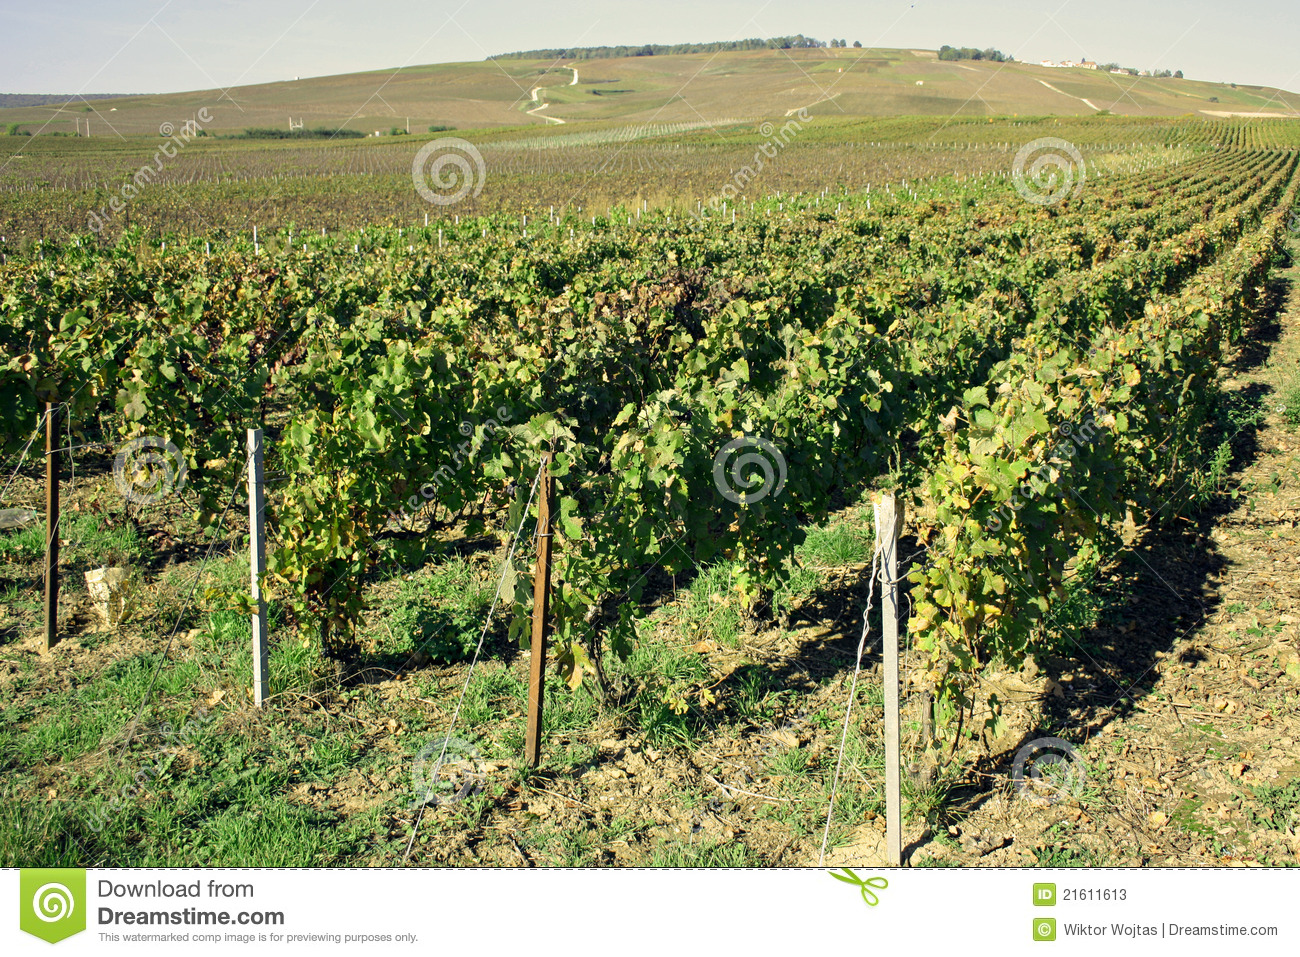 Region of champagne in france stock image image 21611613 for Champagne region in france